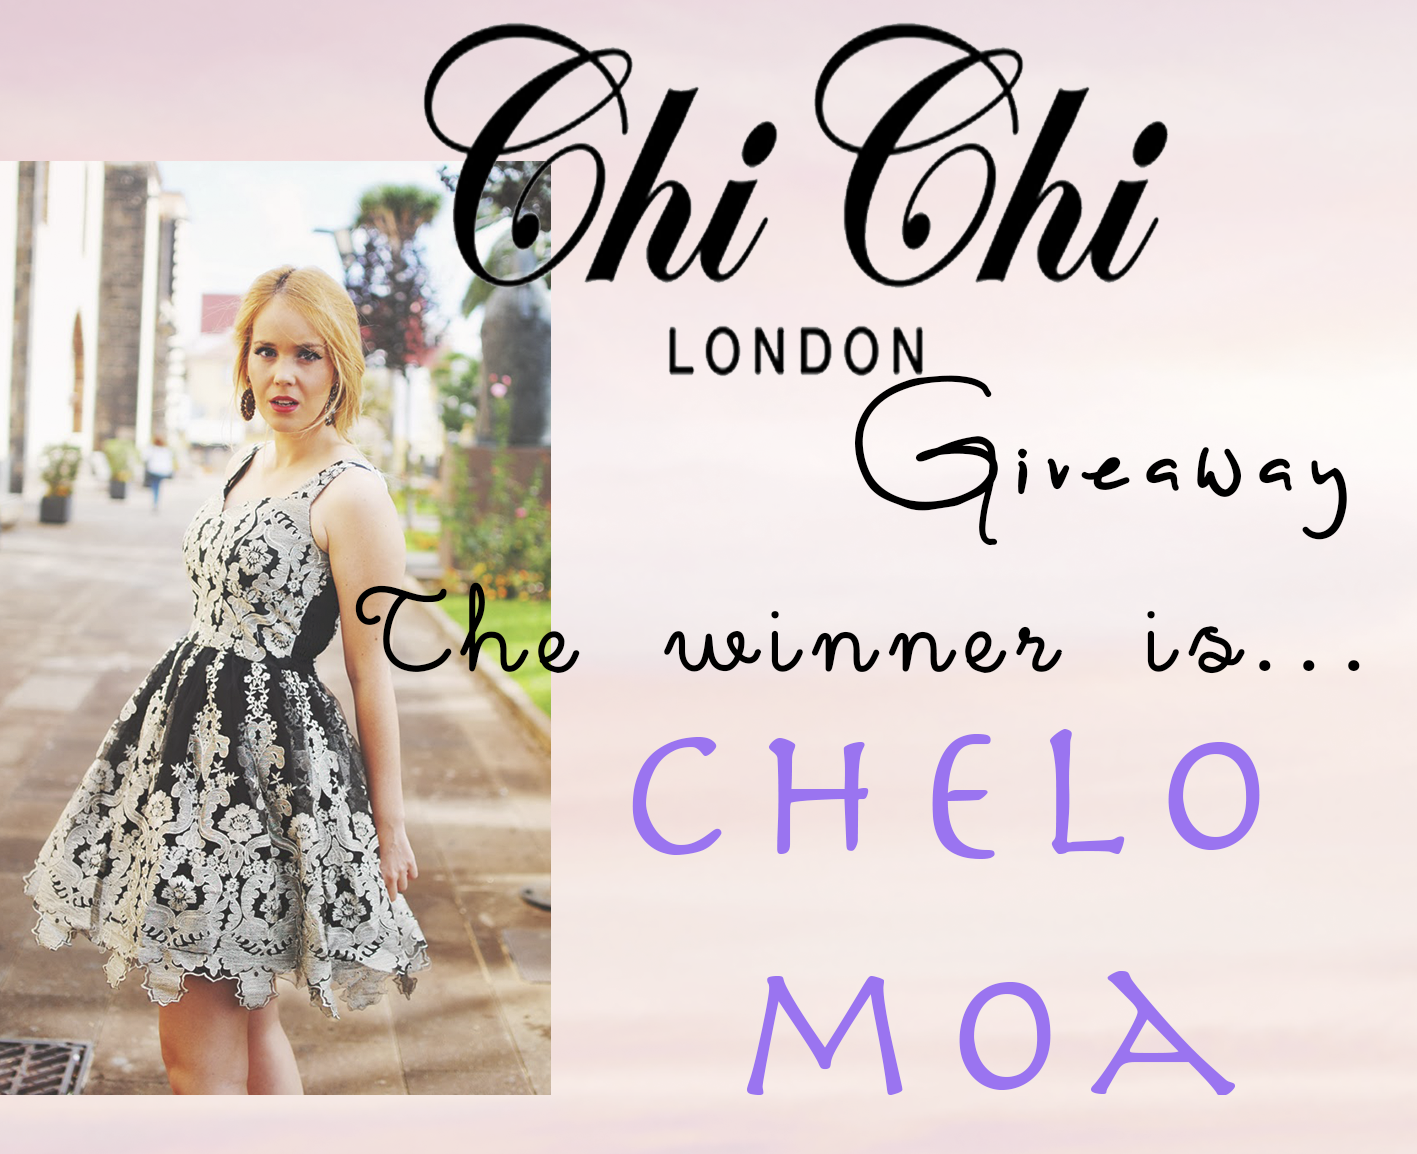 nery hdez, sorteo, giveaway, chi chi london , chi chi giveaway